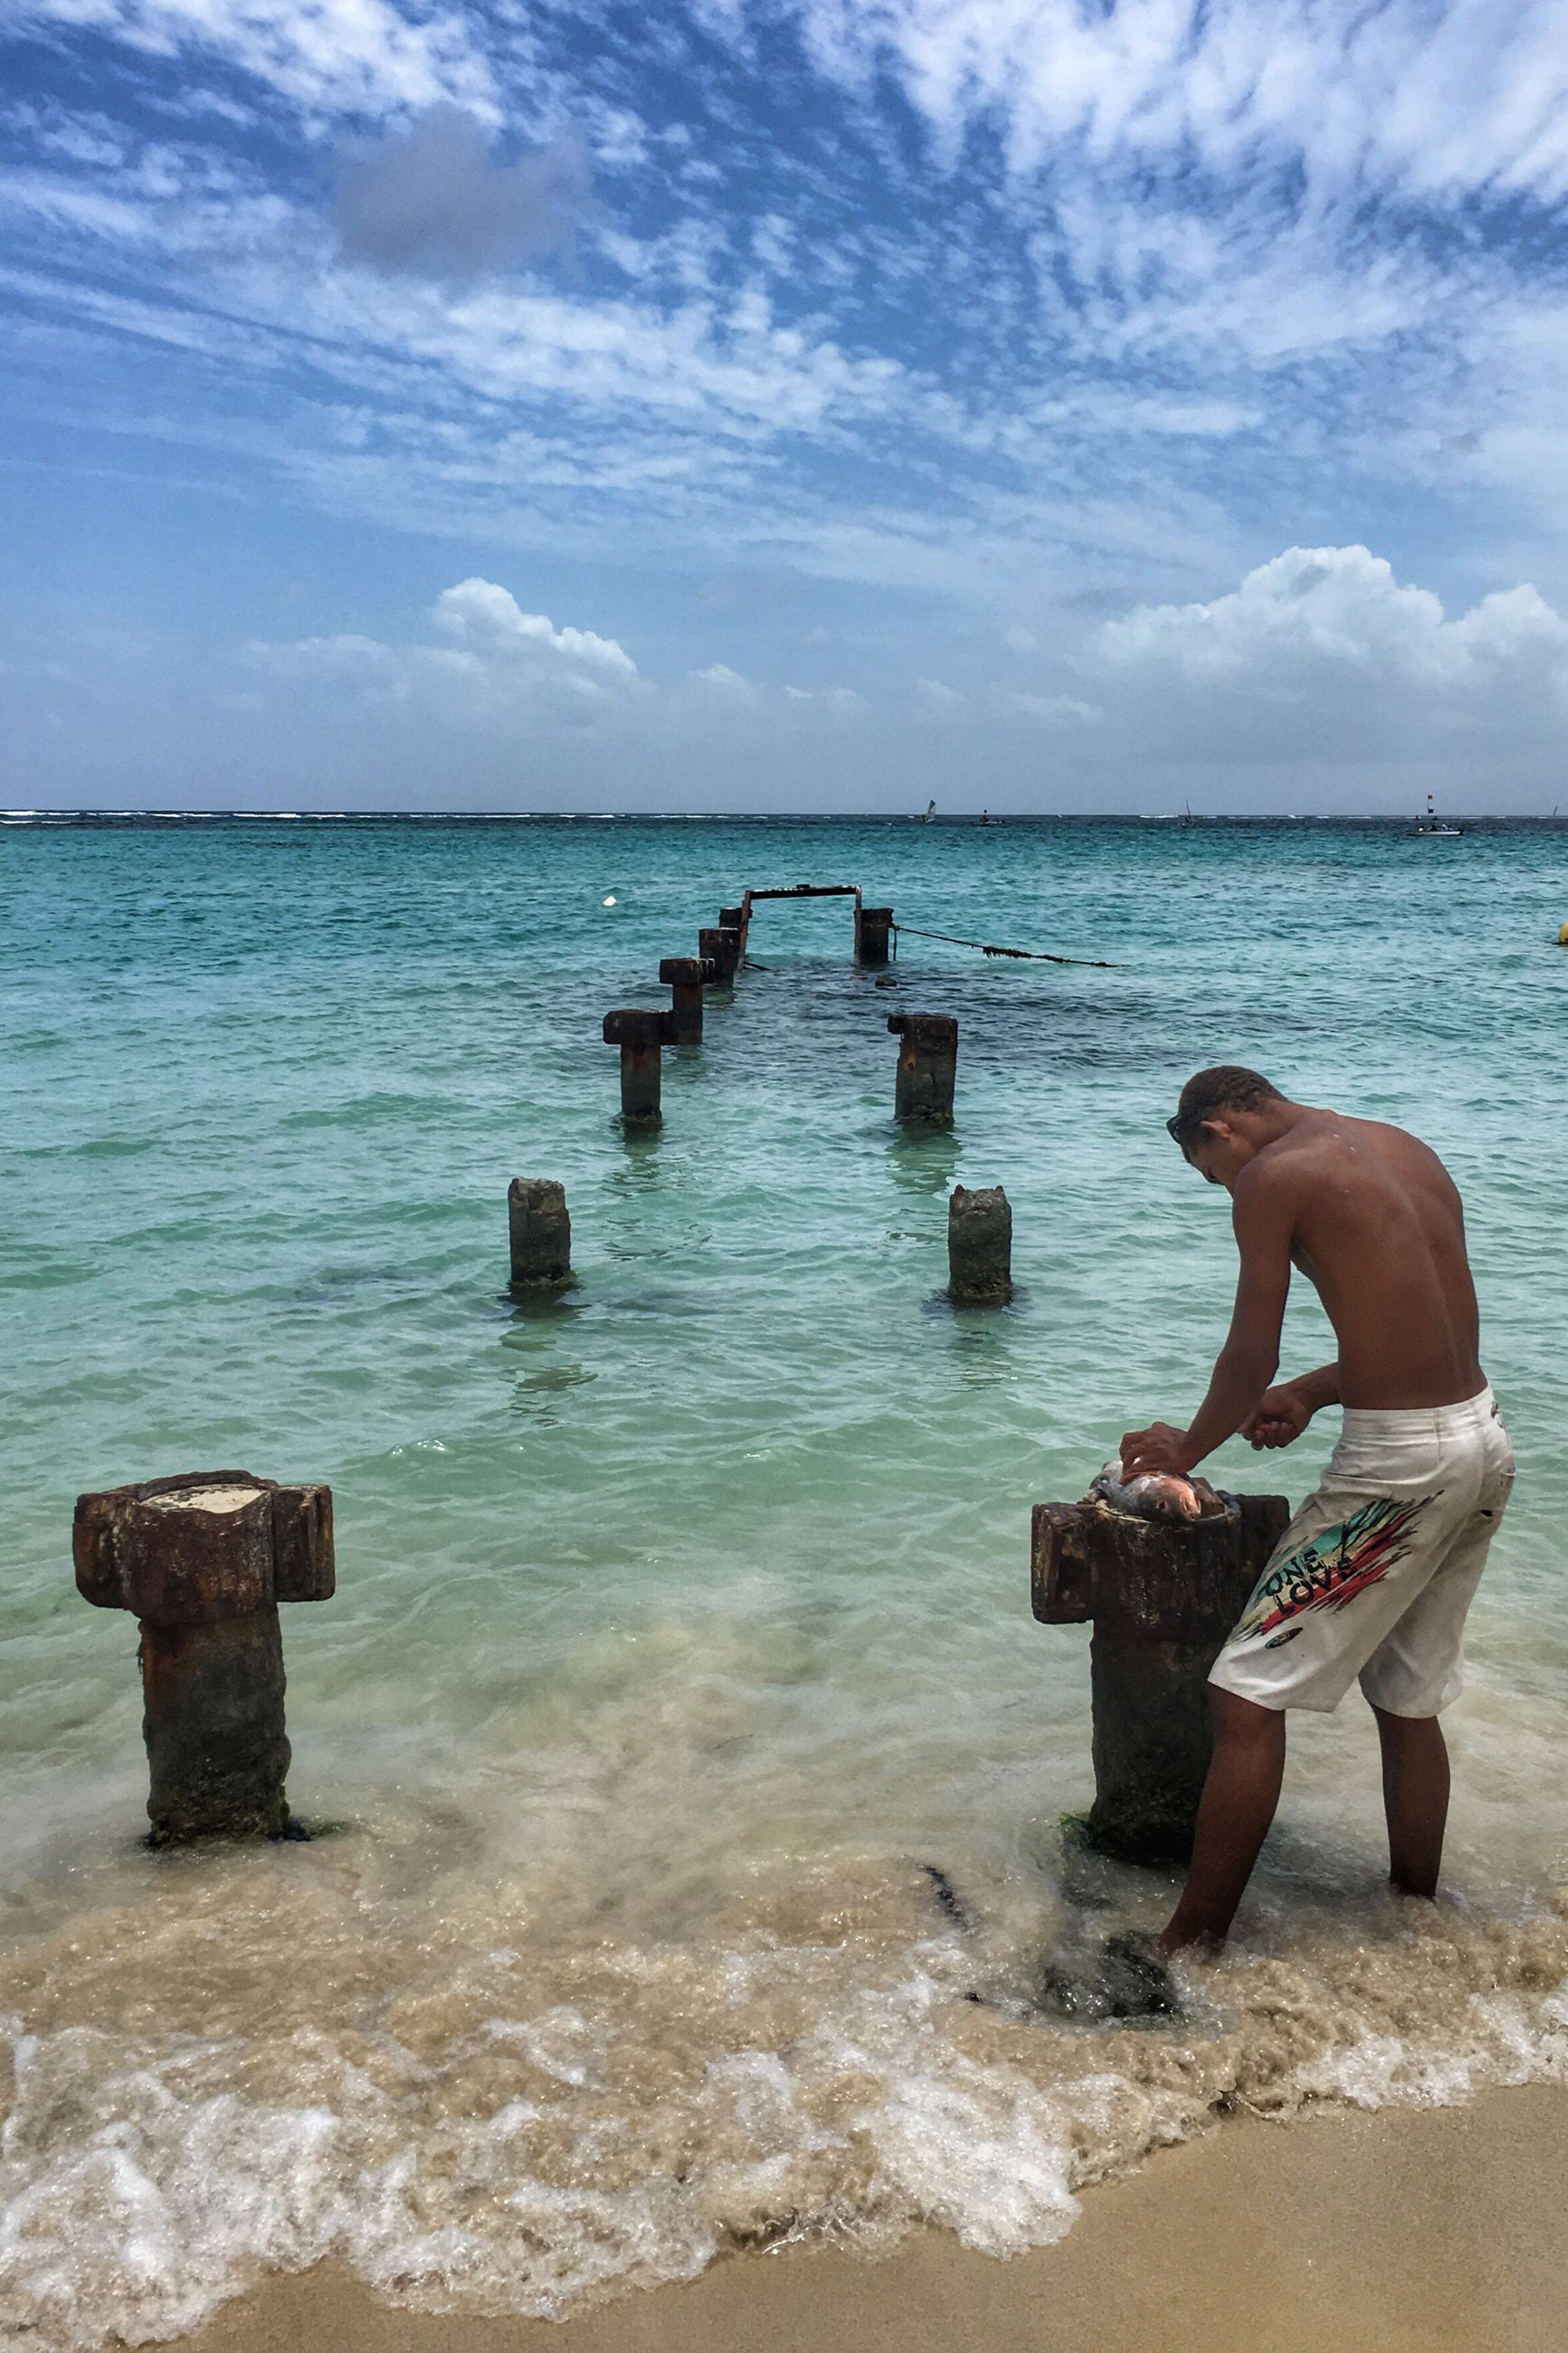 sea, water, horizon over water, sky, lifestyles, leisure activity, beach, cloud - sky, full length, shore, rear view, scenics, beauty in nature, tranquil scene, men, tranquility, nature, cloud